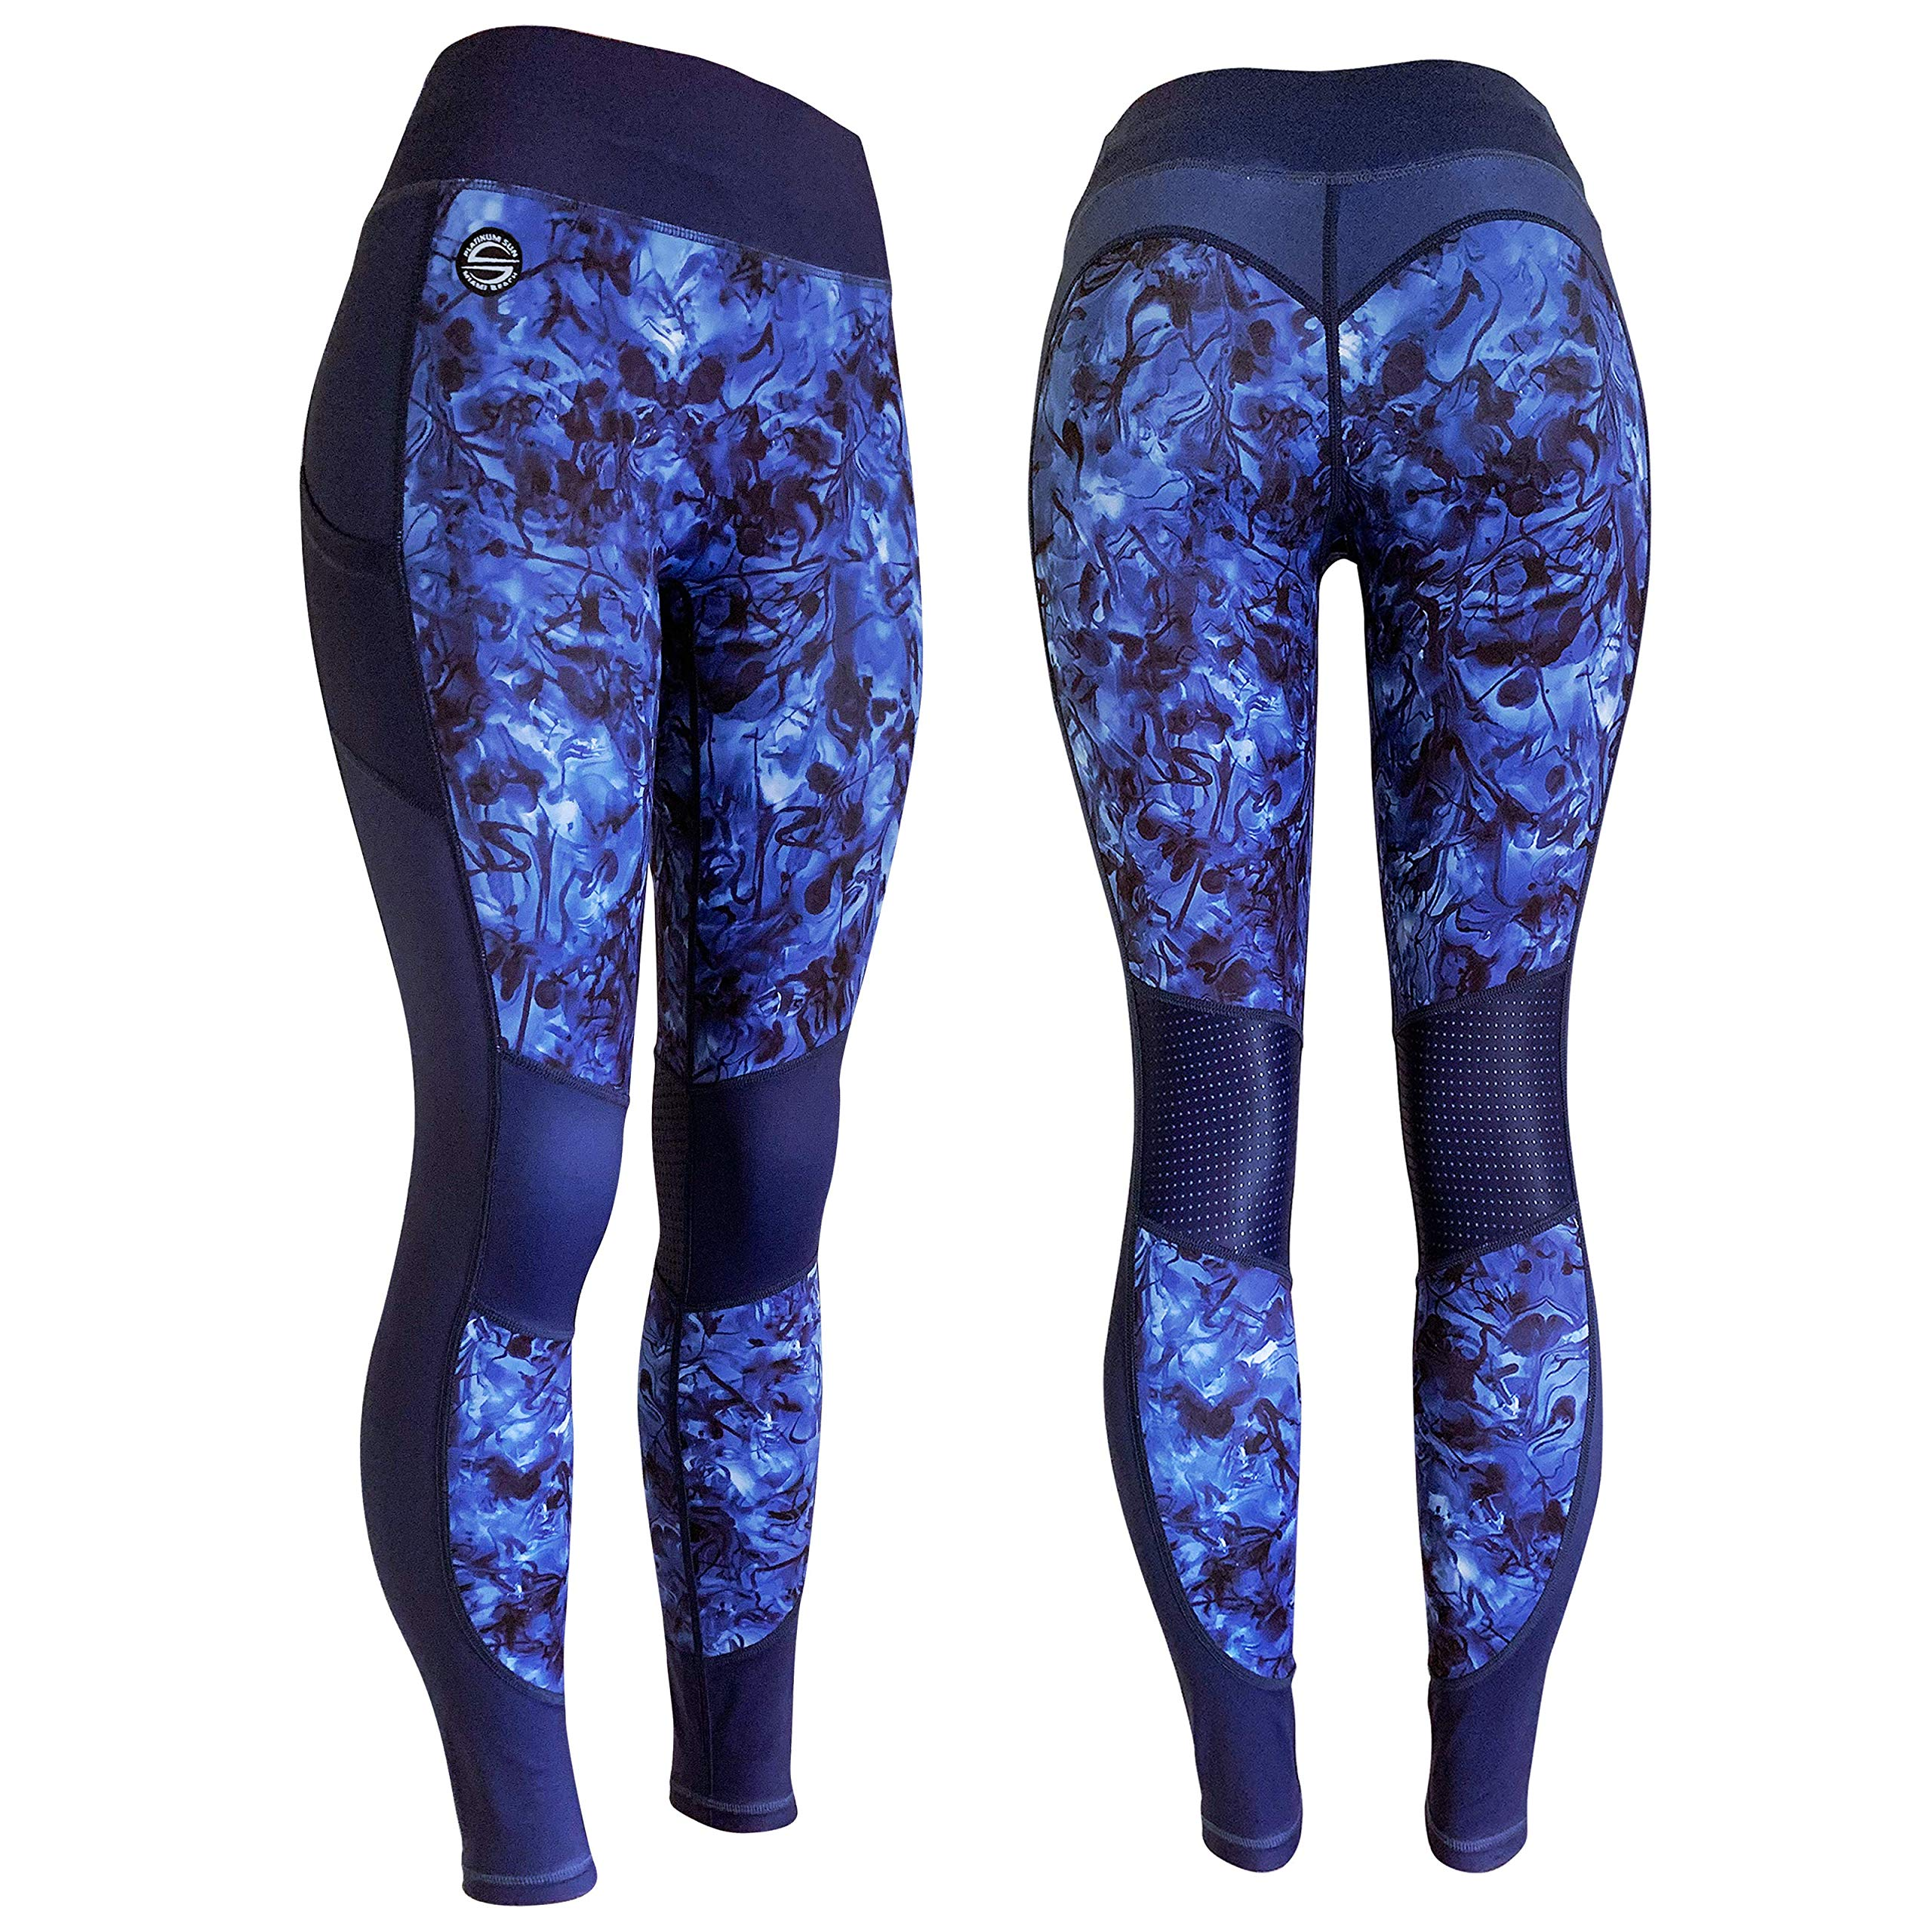 Platinum Sun Marble Capris Leggings for Women with Printed Design UPF 50+ (Royal Blue - Medium) by Platinum Sun